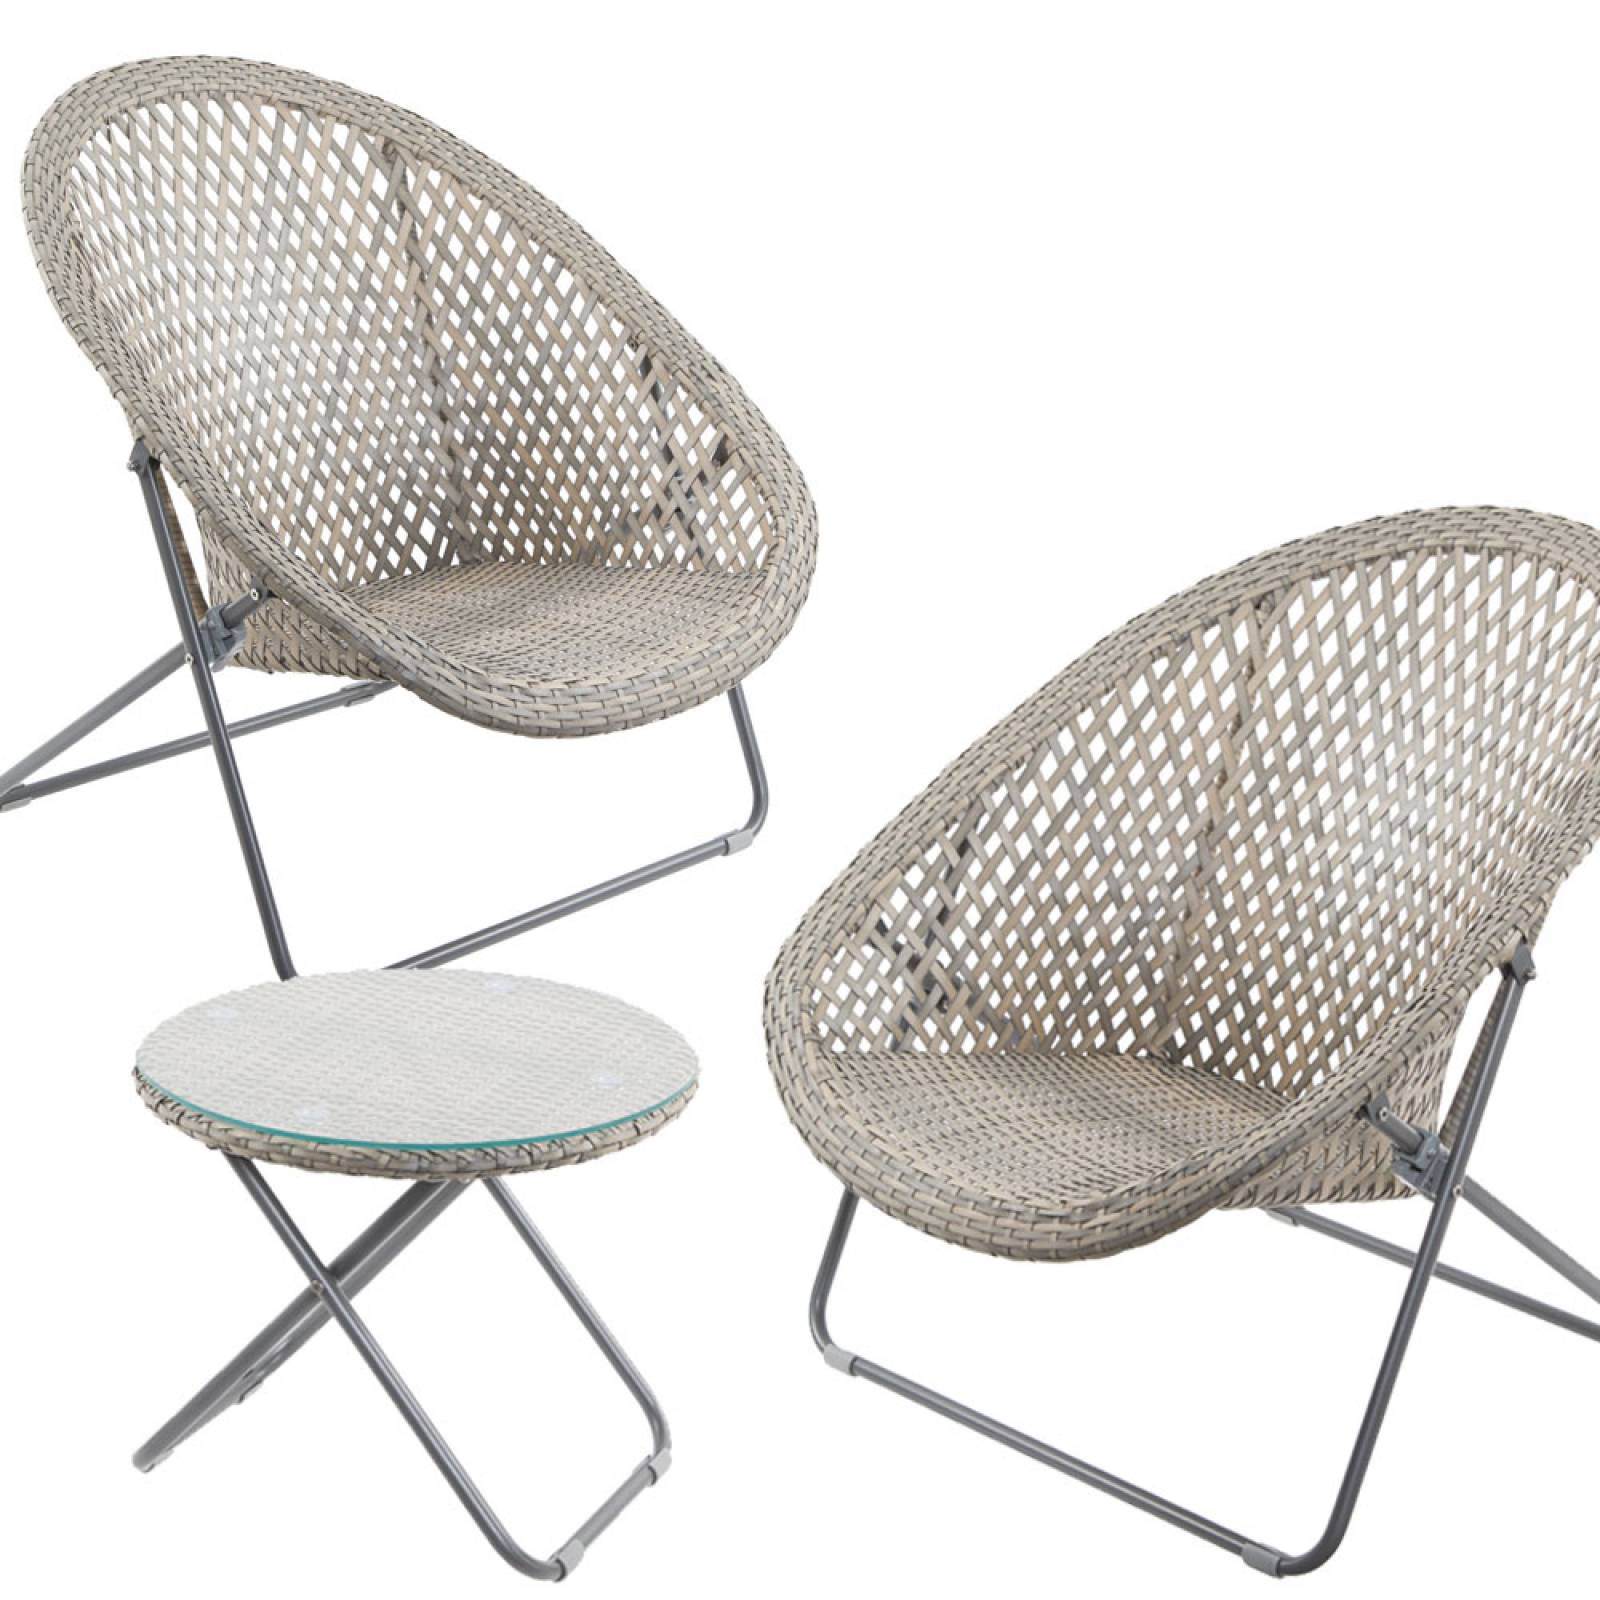 DUE JUNE - Rattan Lounge Chairs and Table Set thumbnails